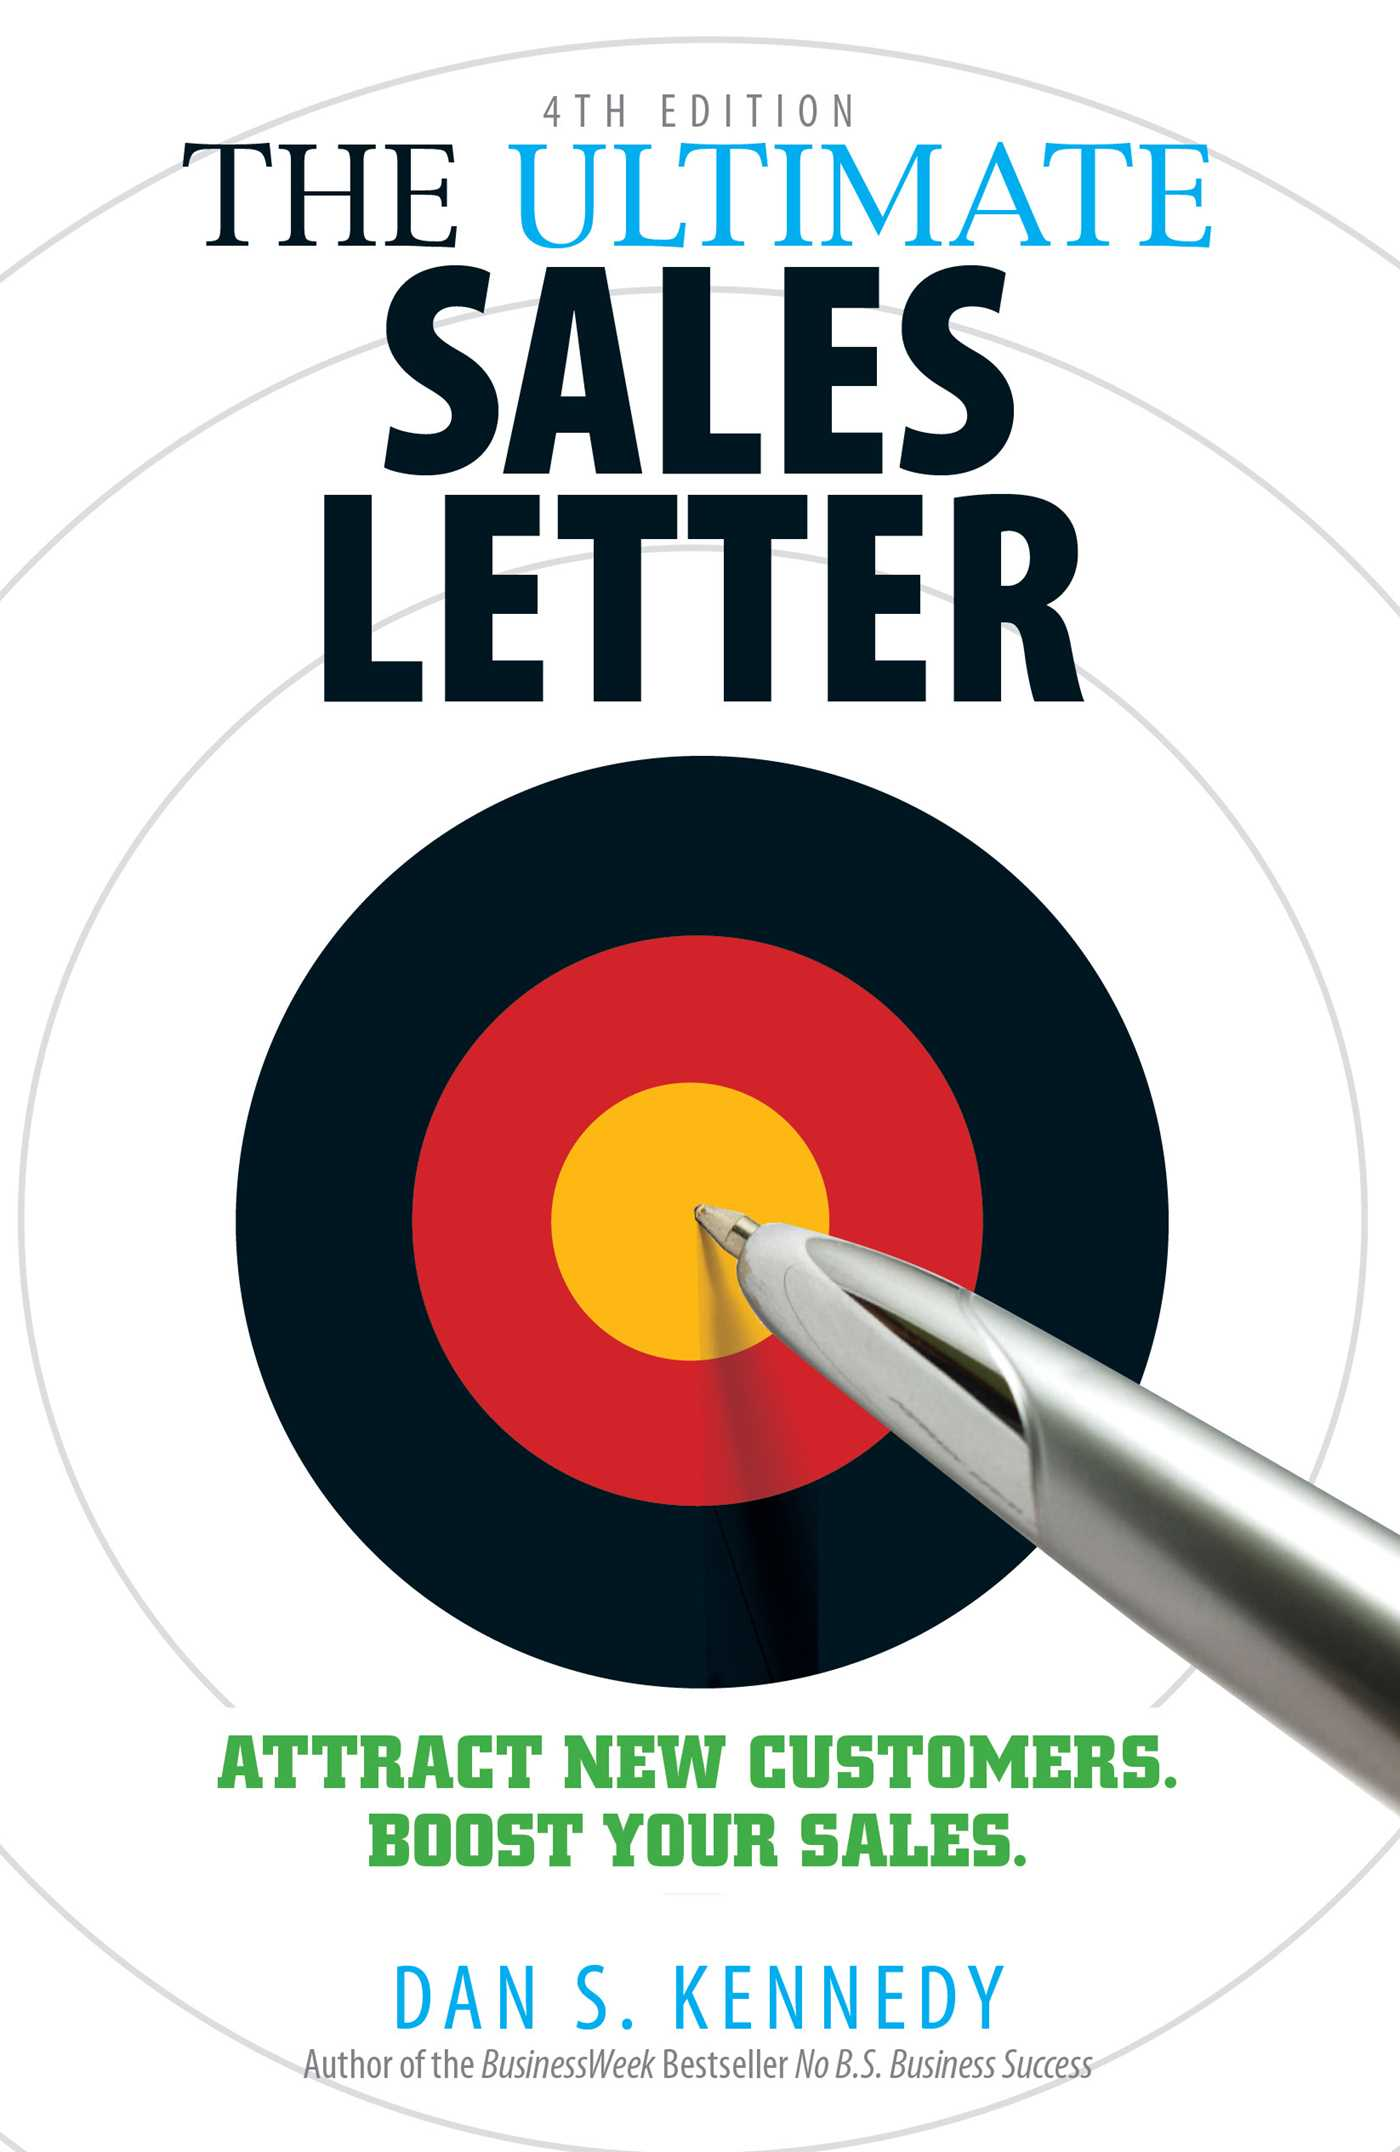 The Ultimate Sales Letter 4th Edition Book By Dan S Kennedy